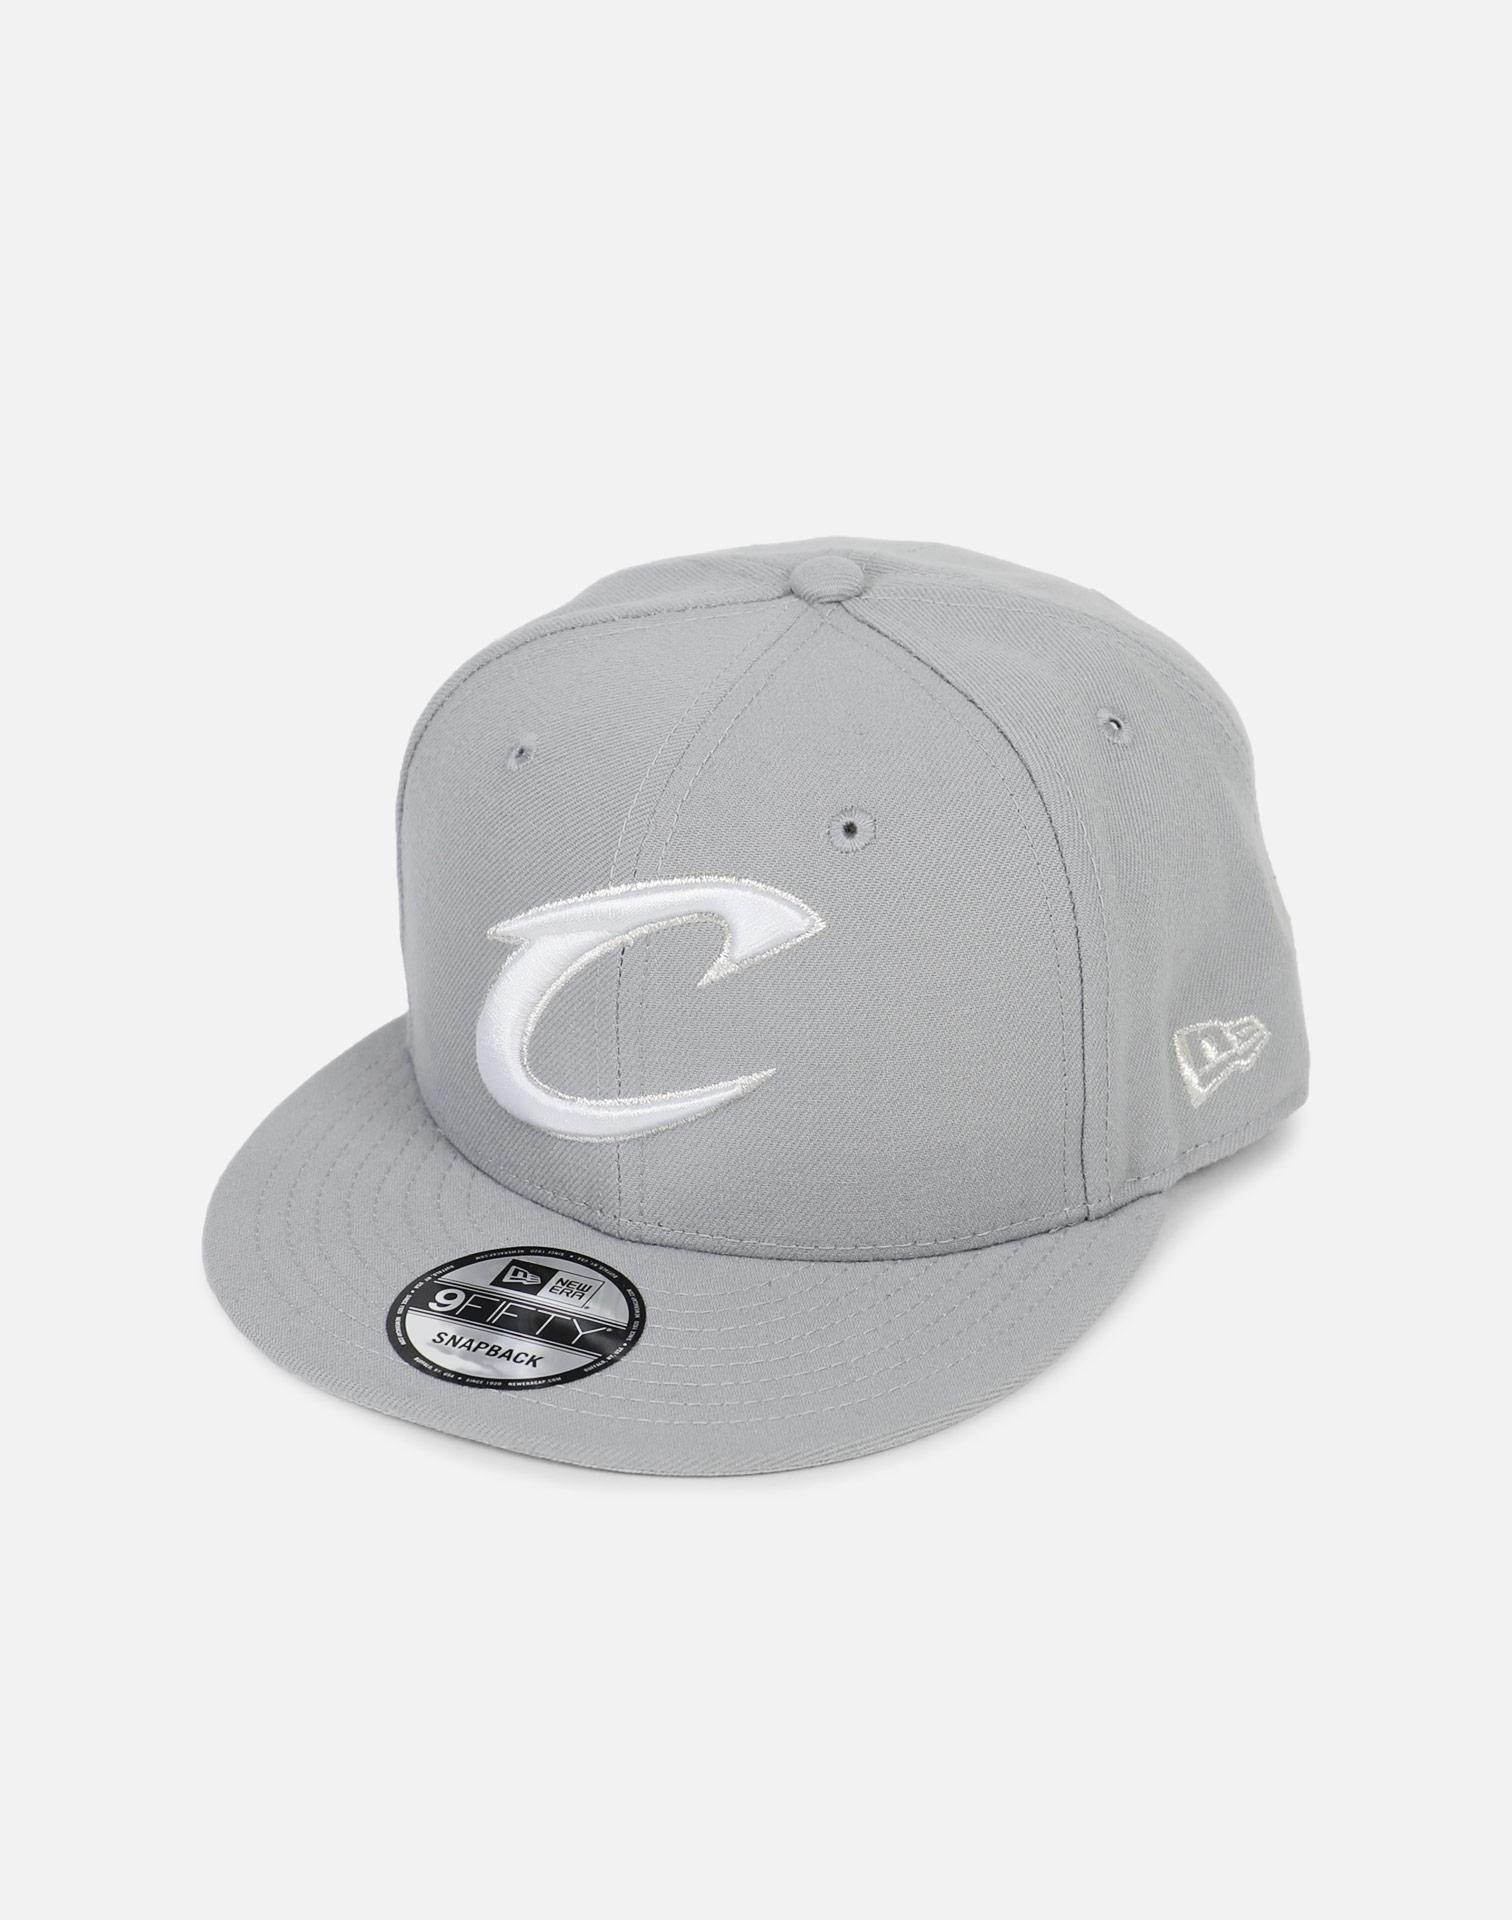 huge sale 2cc1d 13b62 Lyst - Ktz Cleveland Cavaliers  pure Money  Snapback Hat in Gray for Men